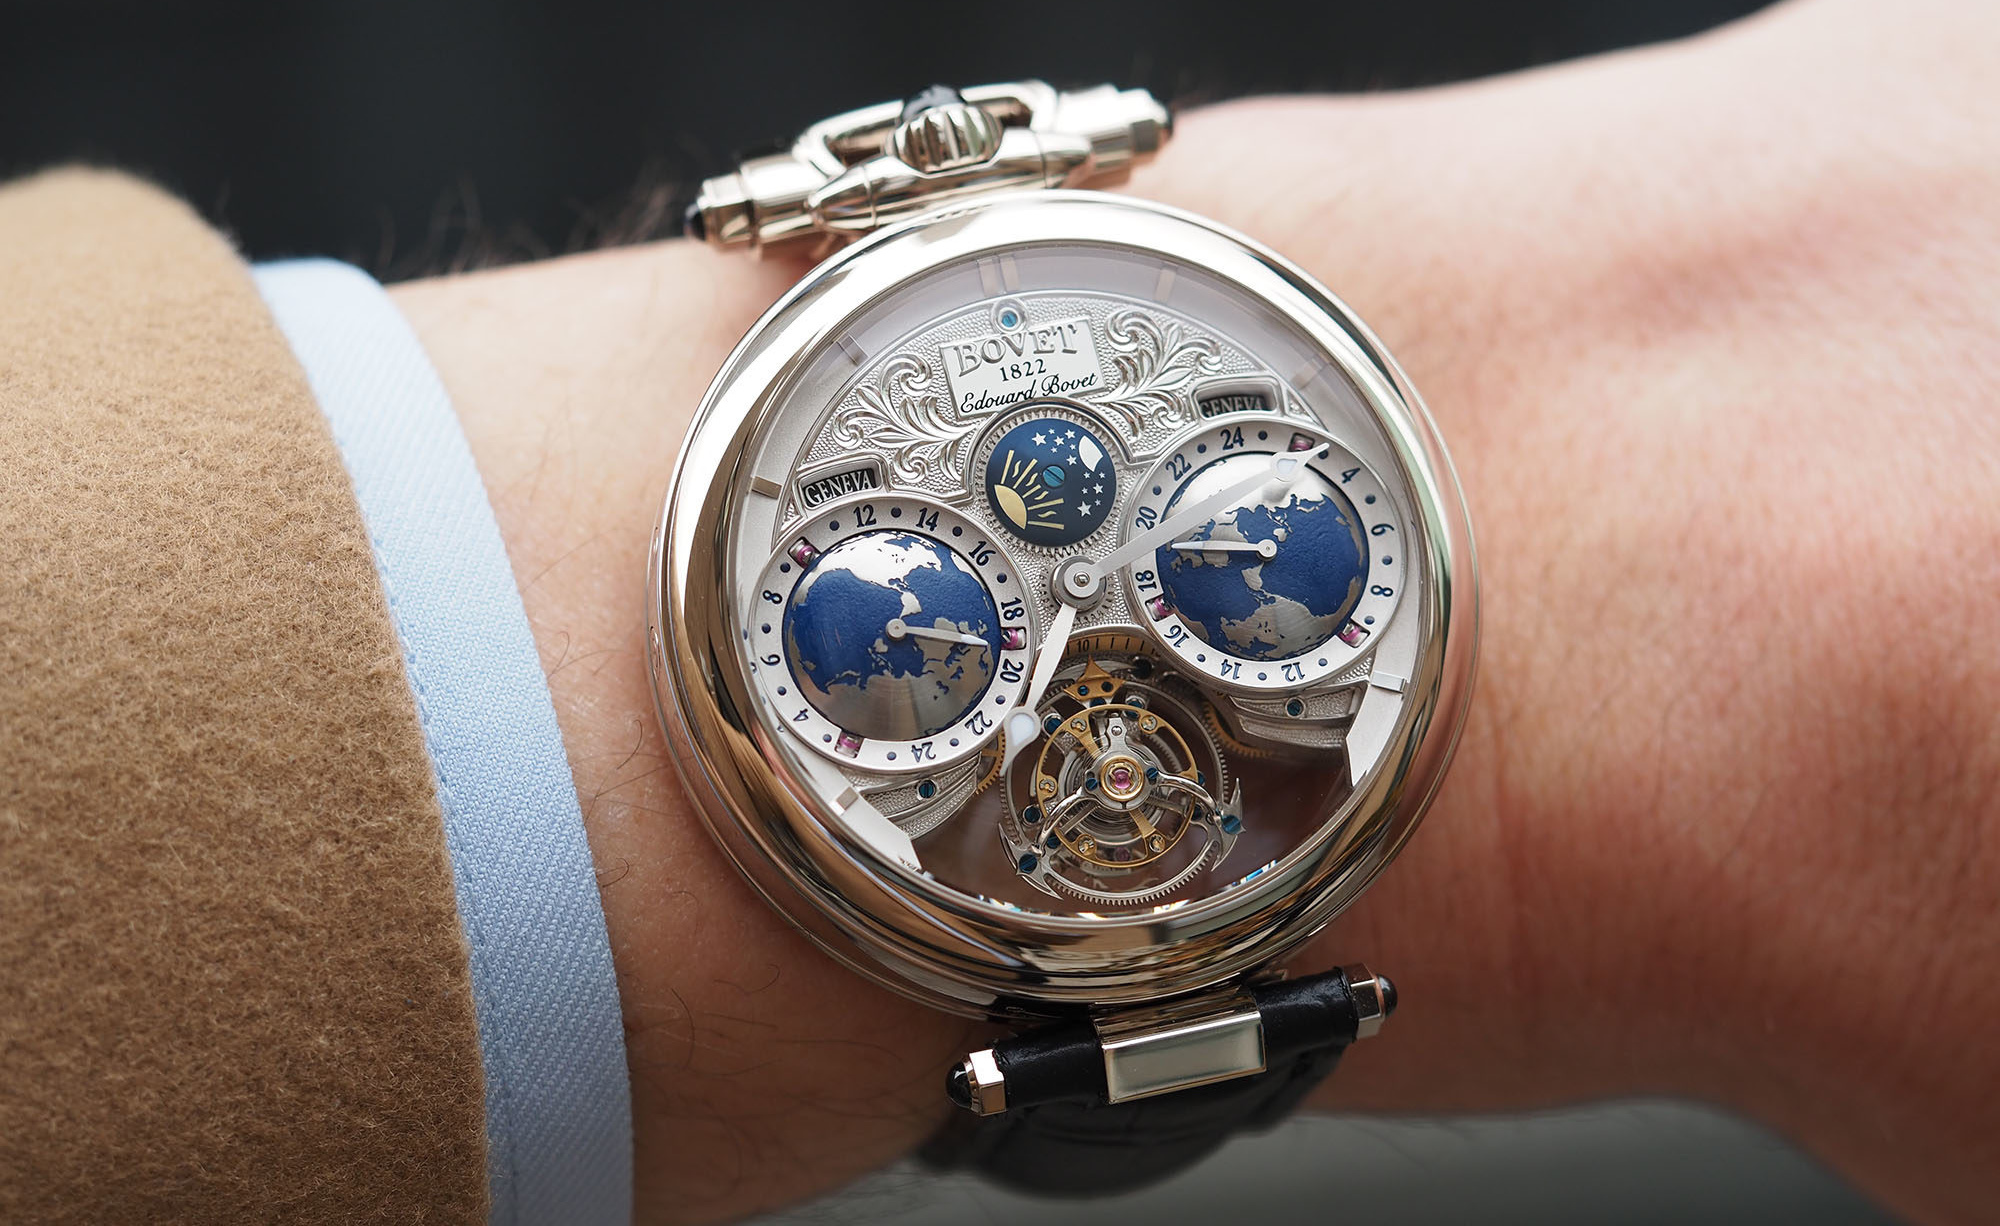 tourbillon amadeo edouard sihh bovet fleurier watches flying